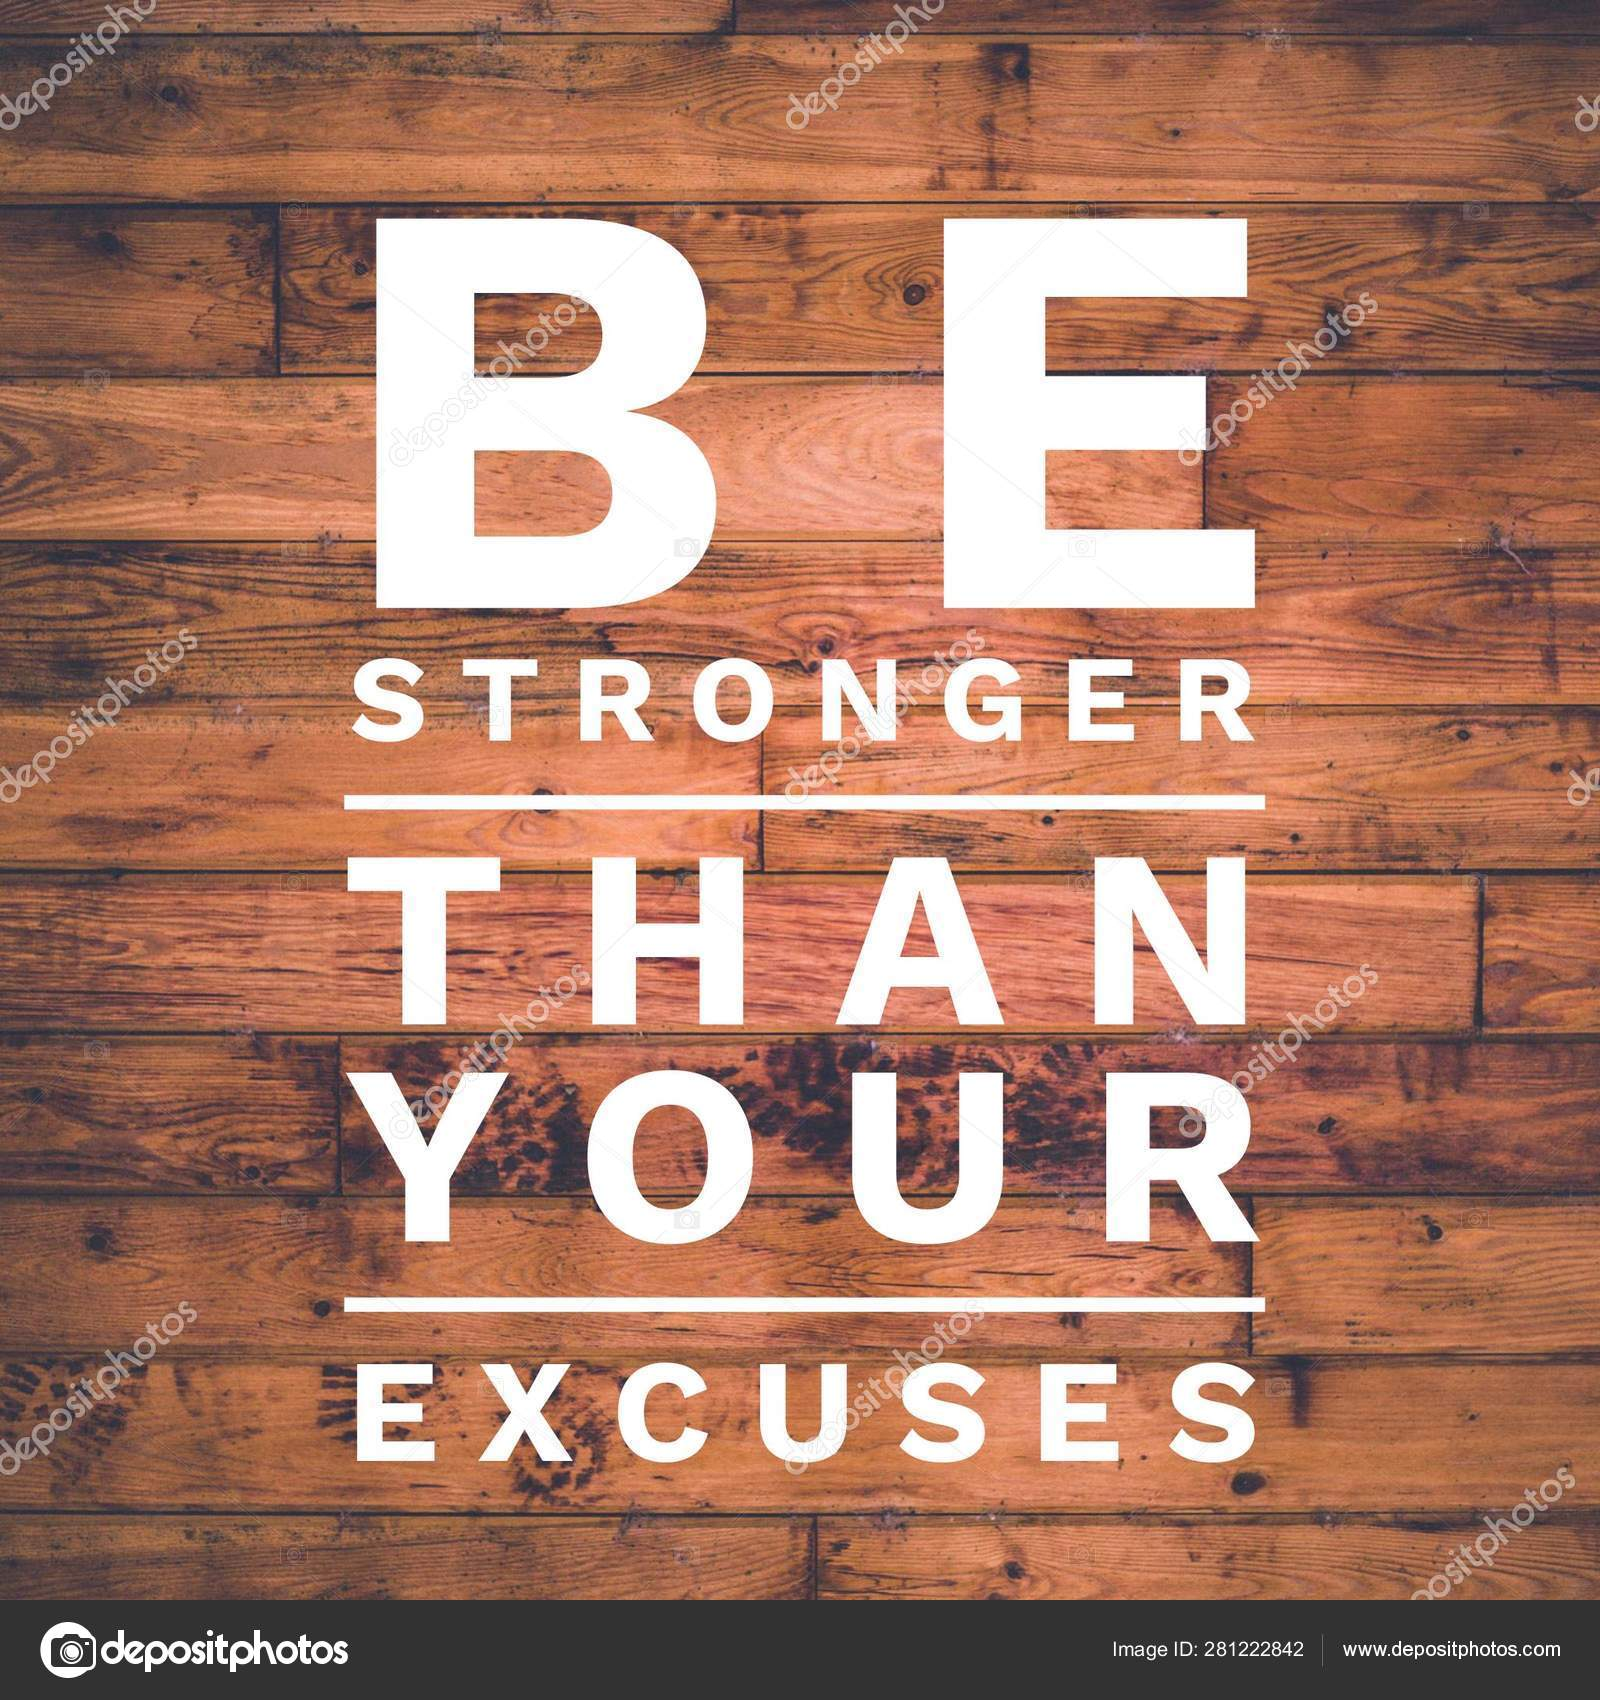 Fitness Motivation Quotes Be Stronger Than Your Excuses Inspirational Quote Best Motivational Quotes And Sayings About Life Wisdom Positive Uplifting Empowering Success Motivation And Inspiration Stock Photo C Addy Dude 281222842